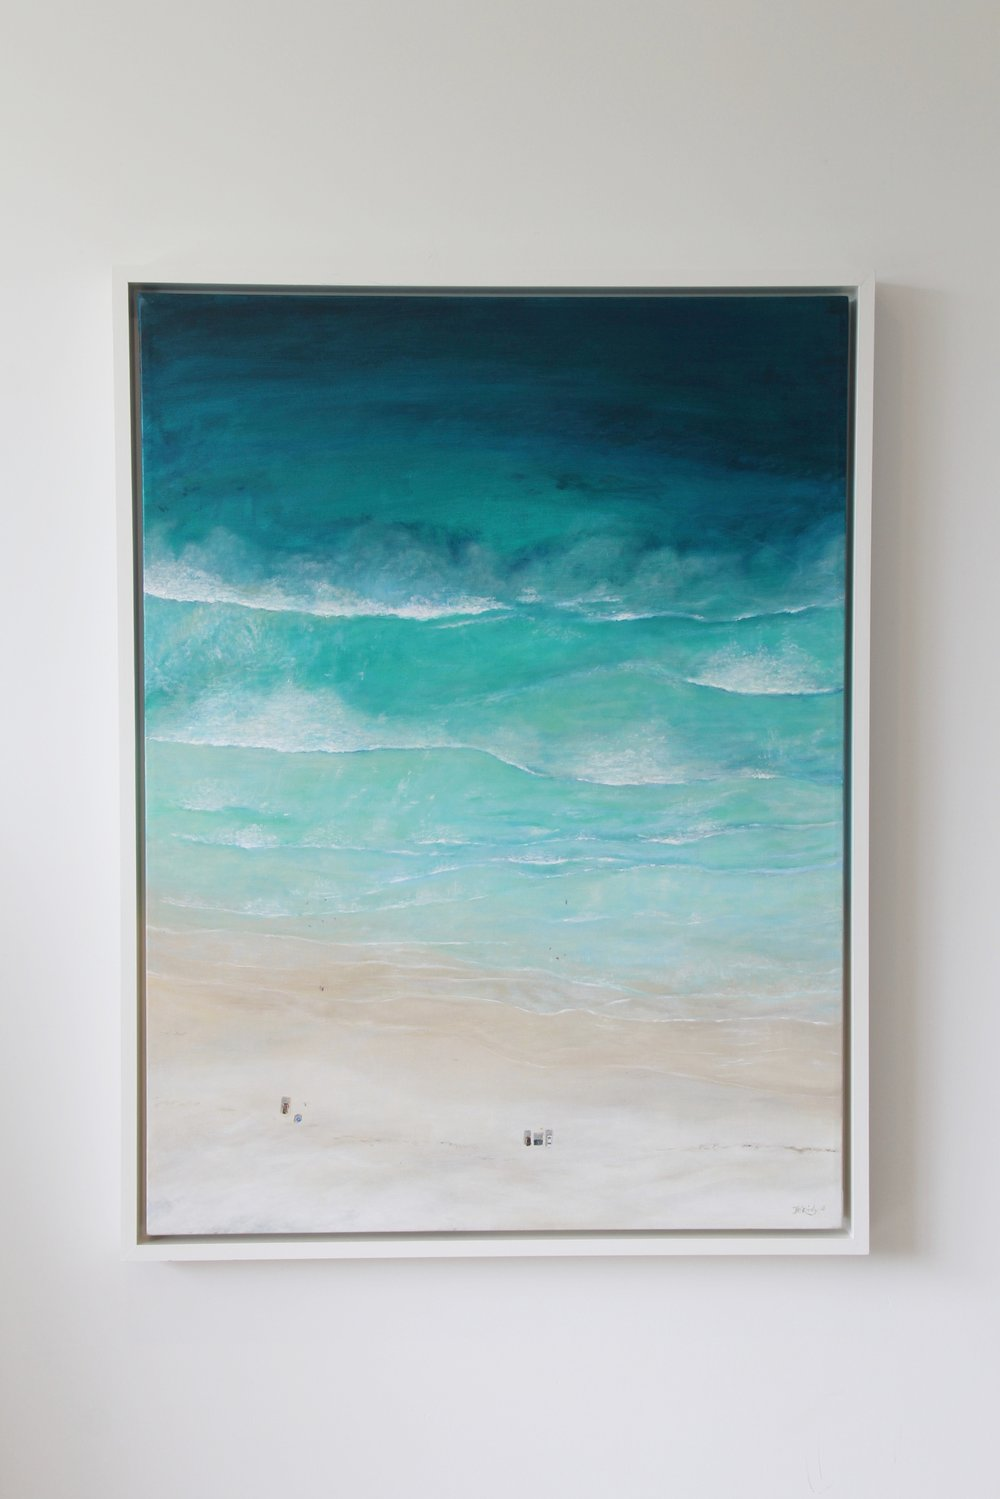 Beach Day at North Wedge - SOLD $800Acrylic on canvas and framed in a custom floating frame. 1075 x 820